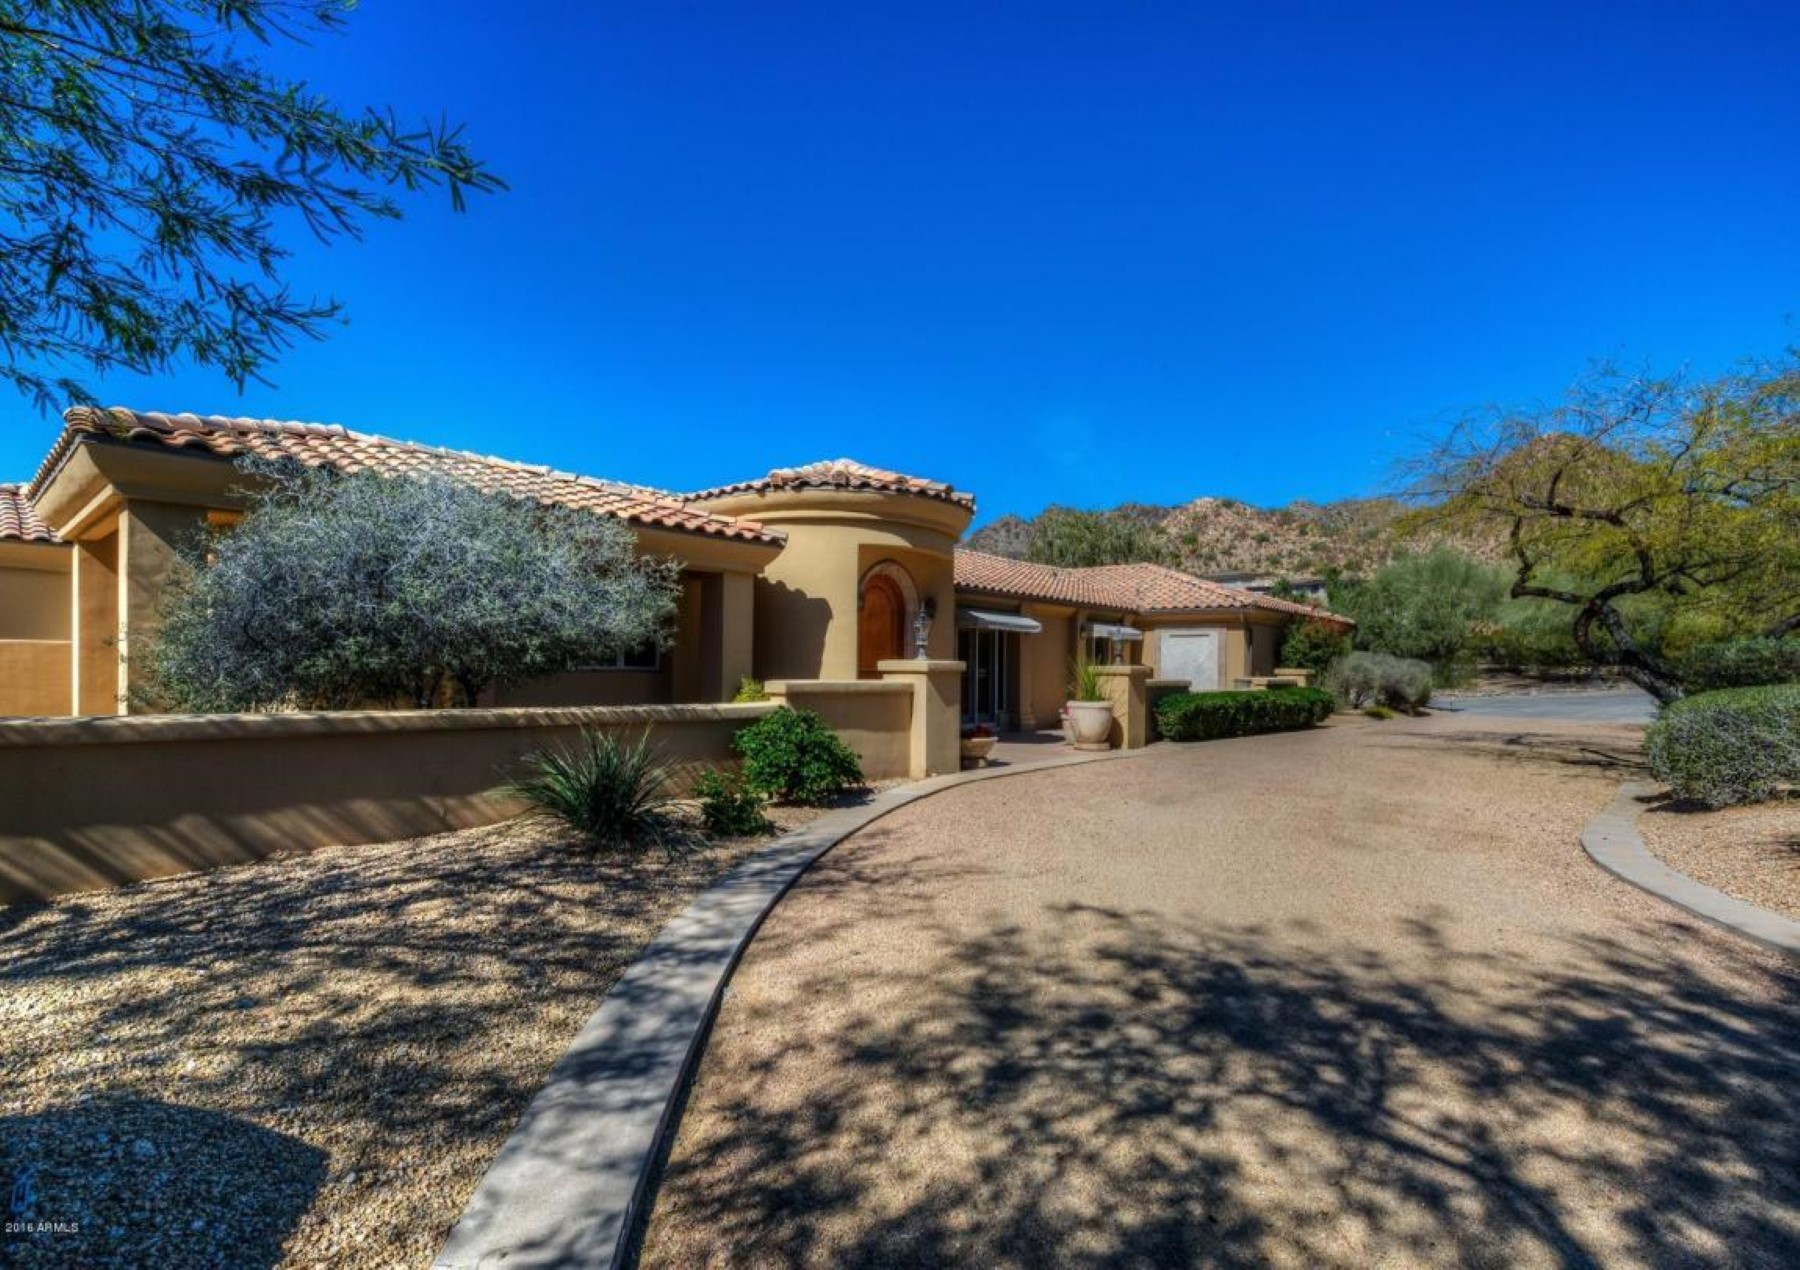 Casa Unifamiliar por un Venta en Fantastic home extremely private in a fabulous location 6334 N 35th Street Paradise Valley, Arizona, 85253 Estados Unidos